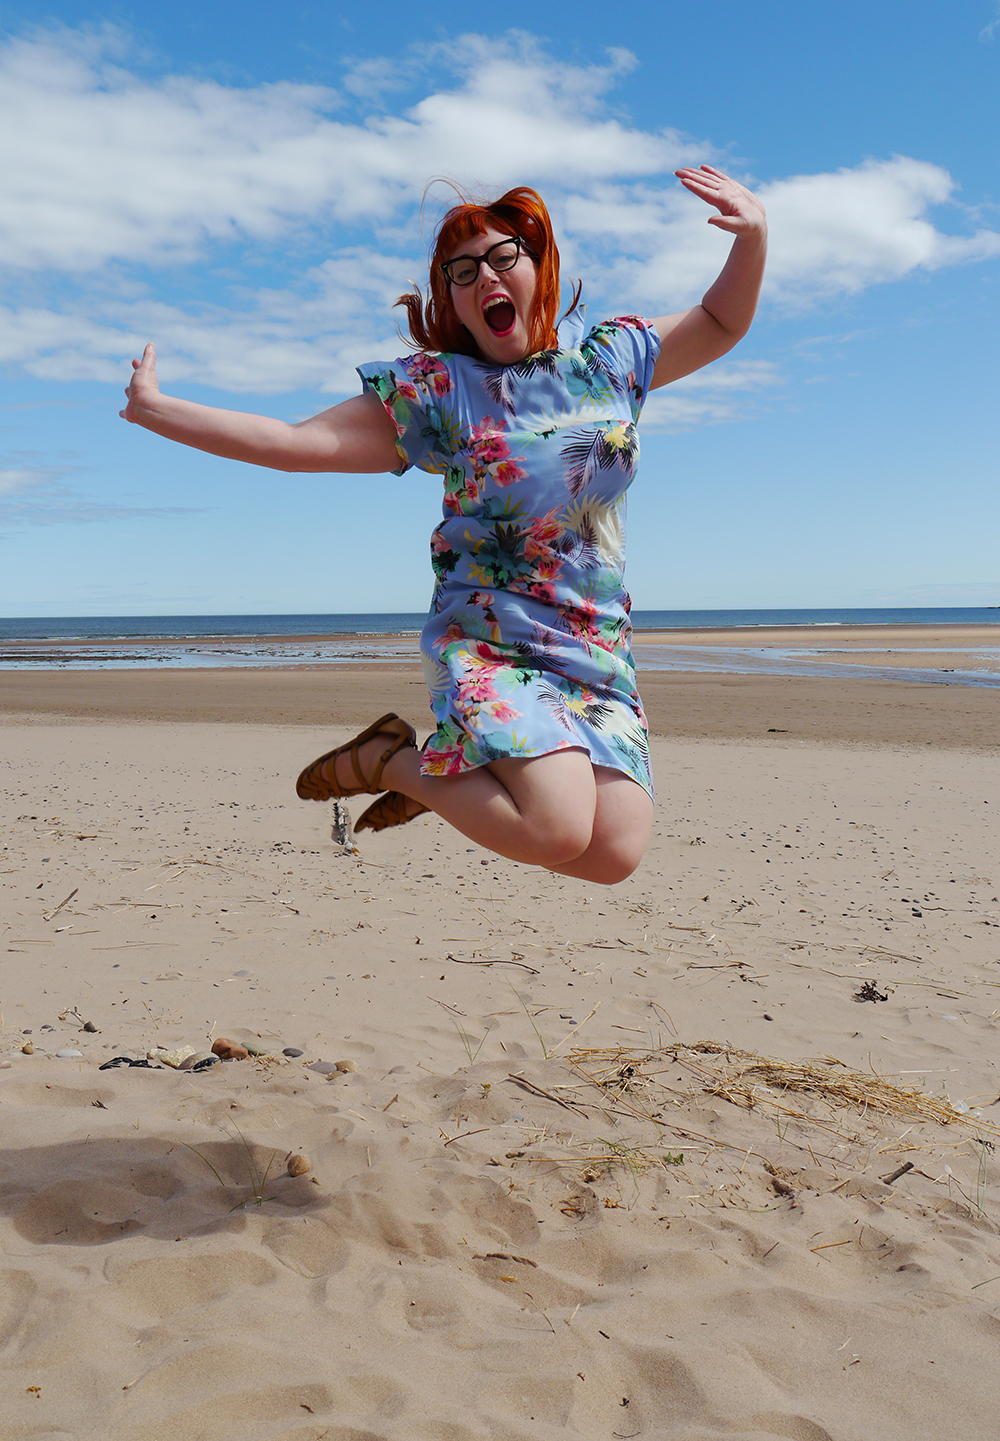 summer style, tropical style, beach style, DIY dress, dressmaking, Styled by Helen: Tropical, red head, ginger, Topshop sandals, jump shot